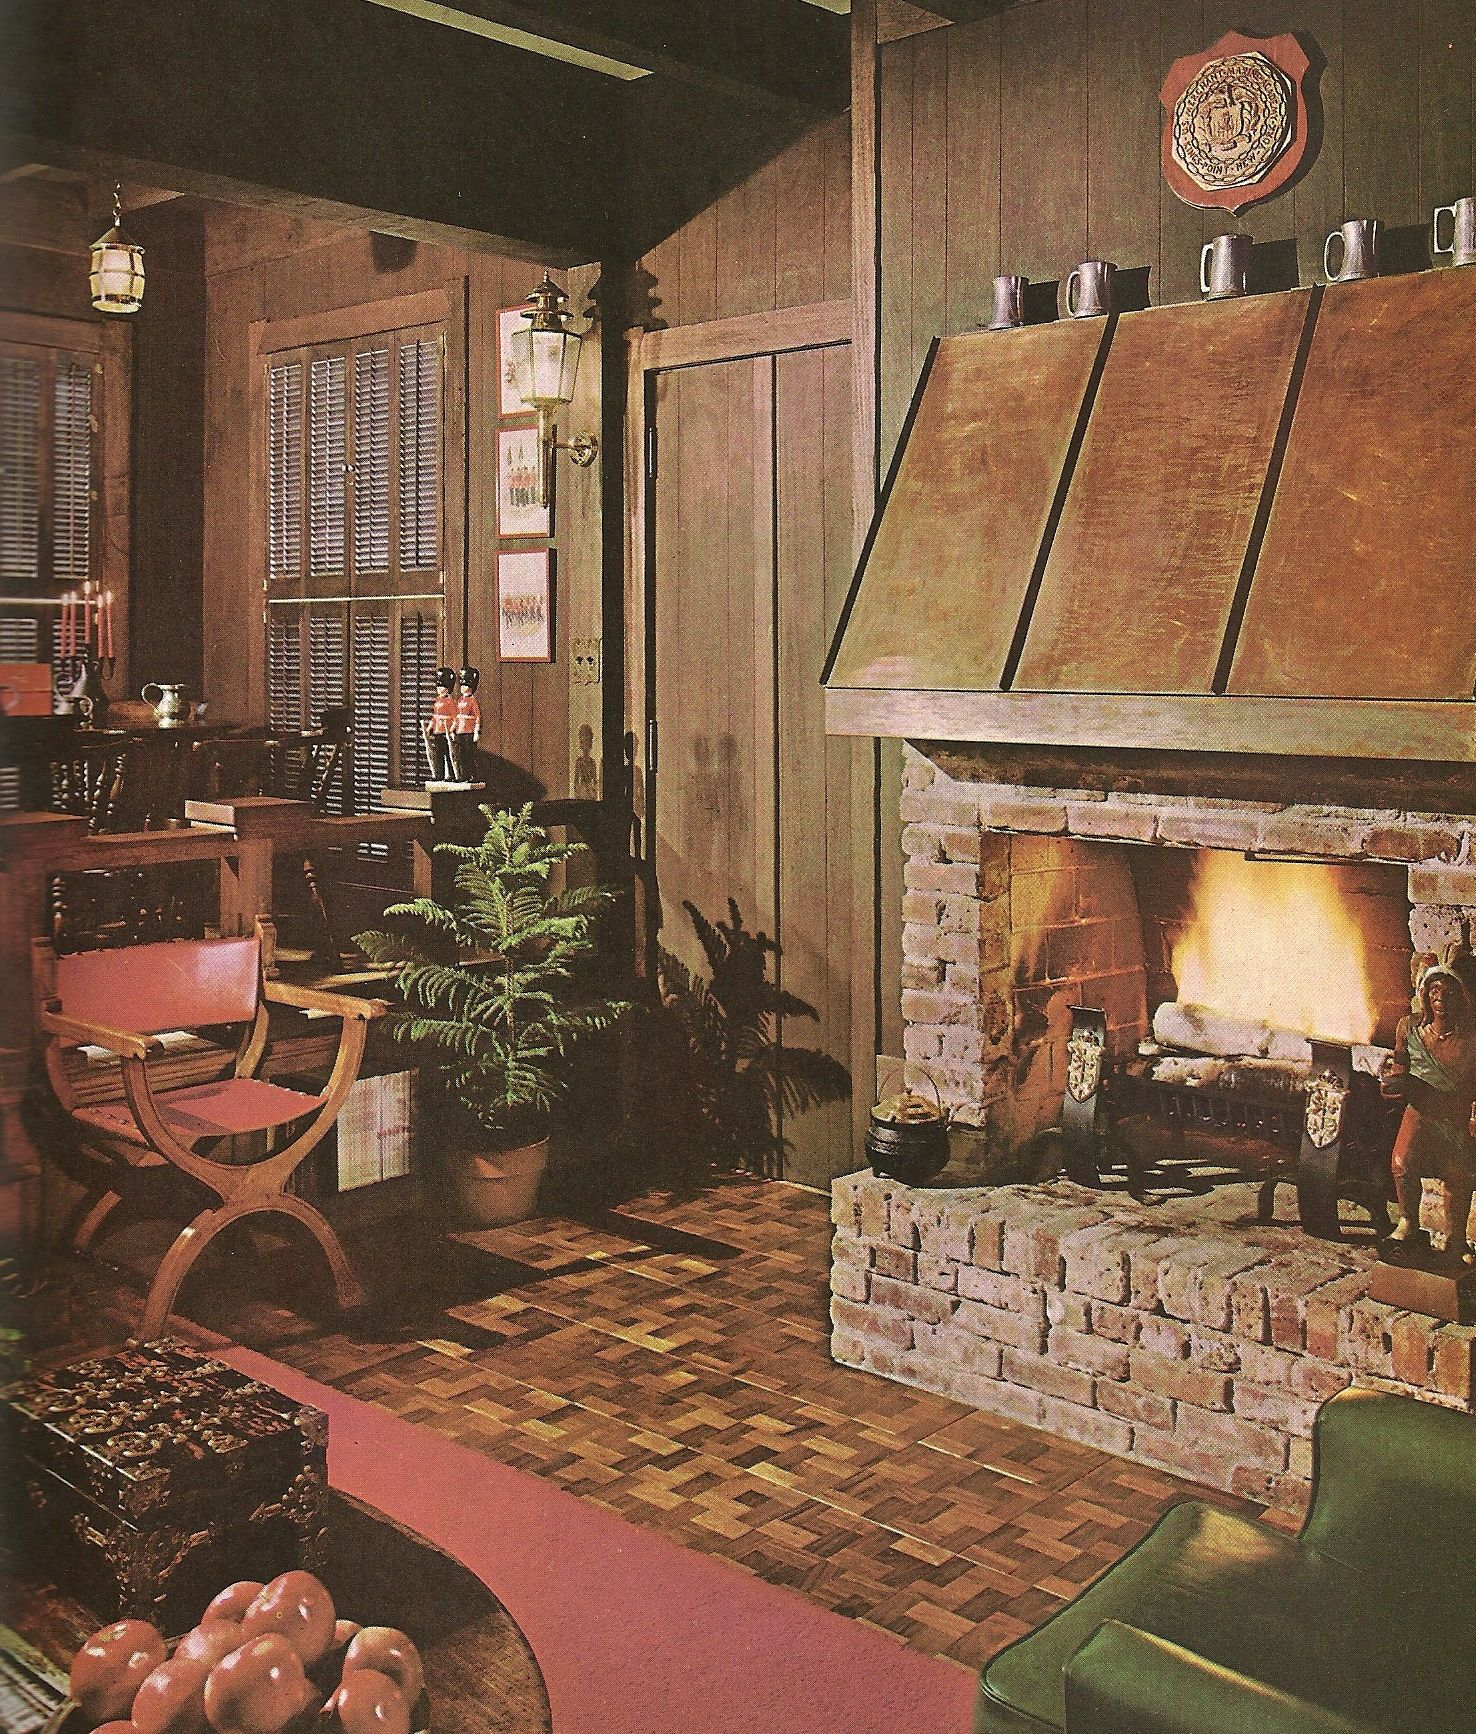 Vintage Home Decorating: Getting Ideas From the Late 1960s ...